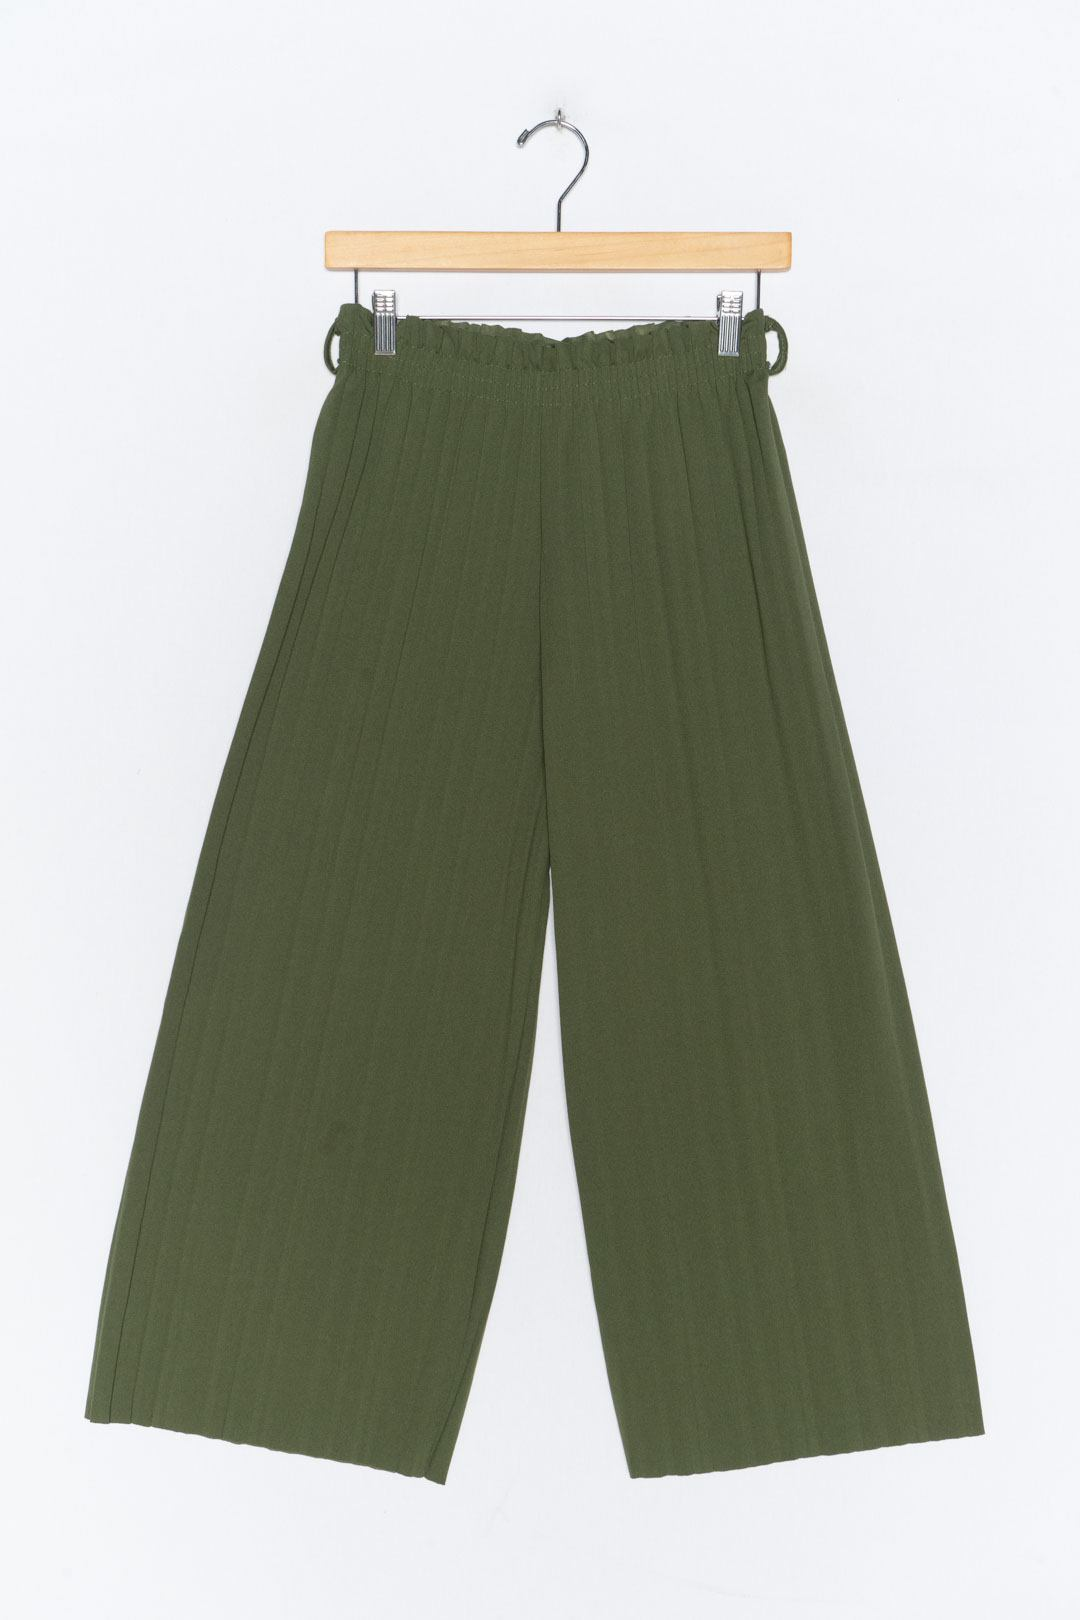 Green Pleated Culottes M - VinoKilo.com